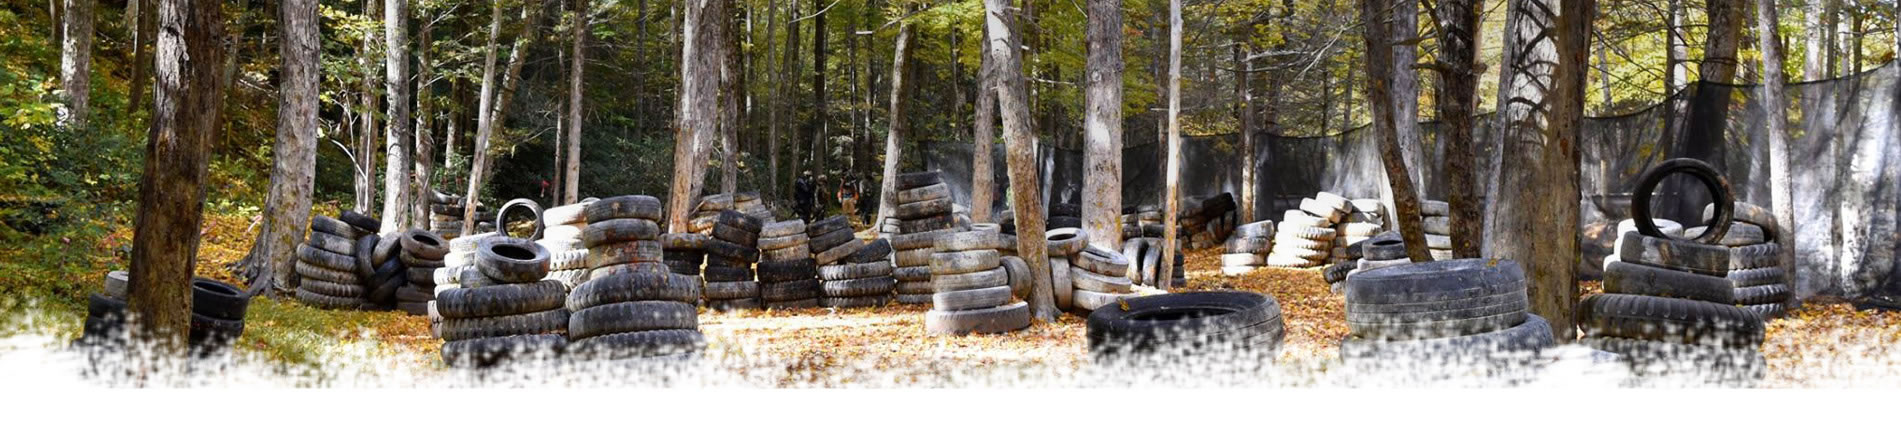 photo of an airsoft field with tires